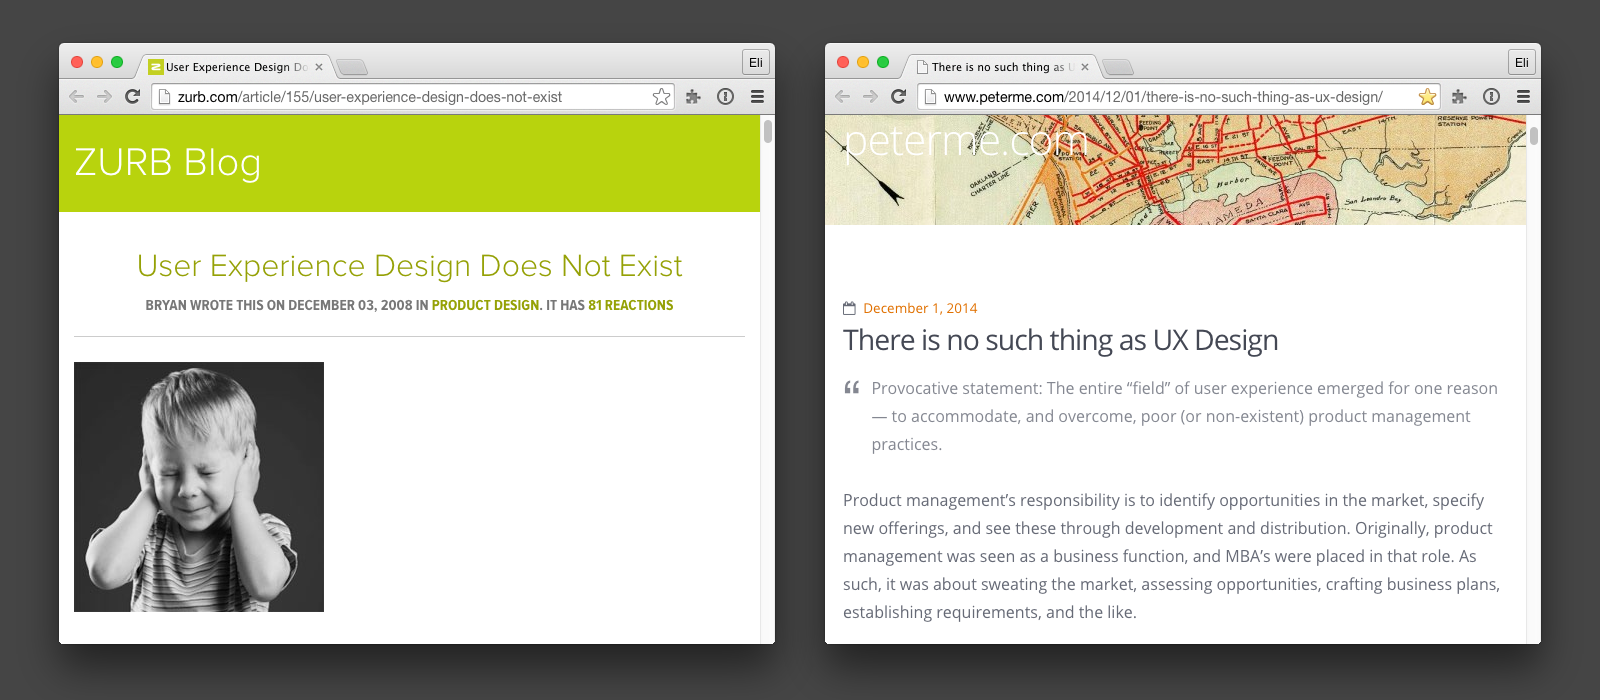 Zurb and Merholz's articles on the existence of UX.